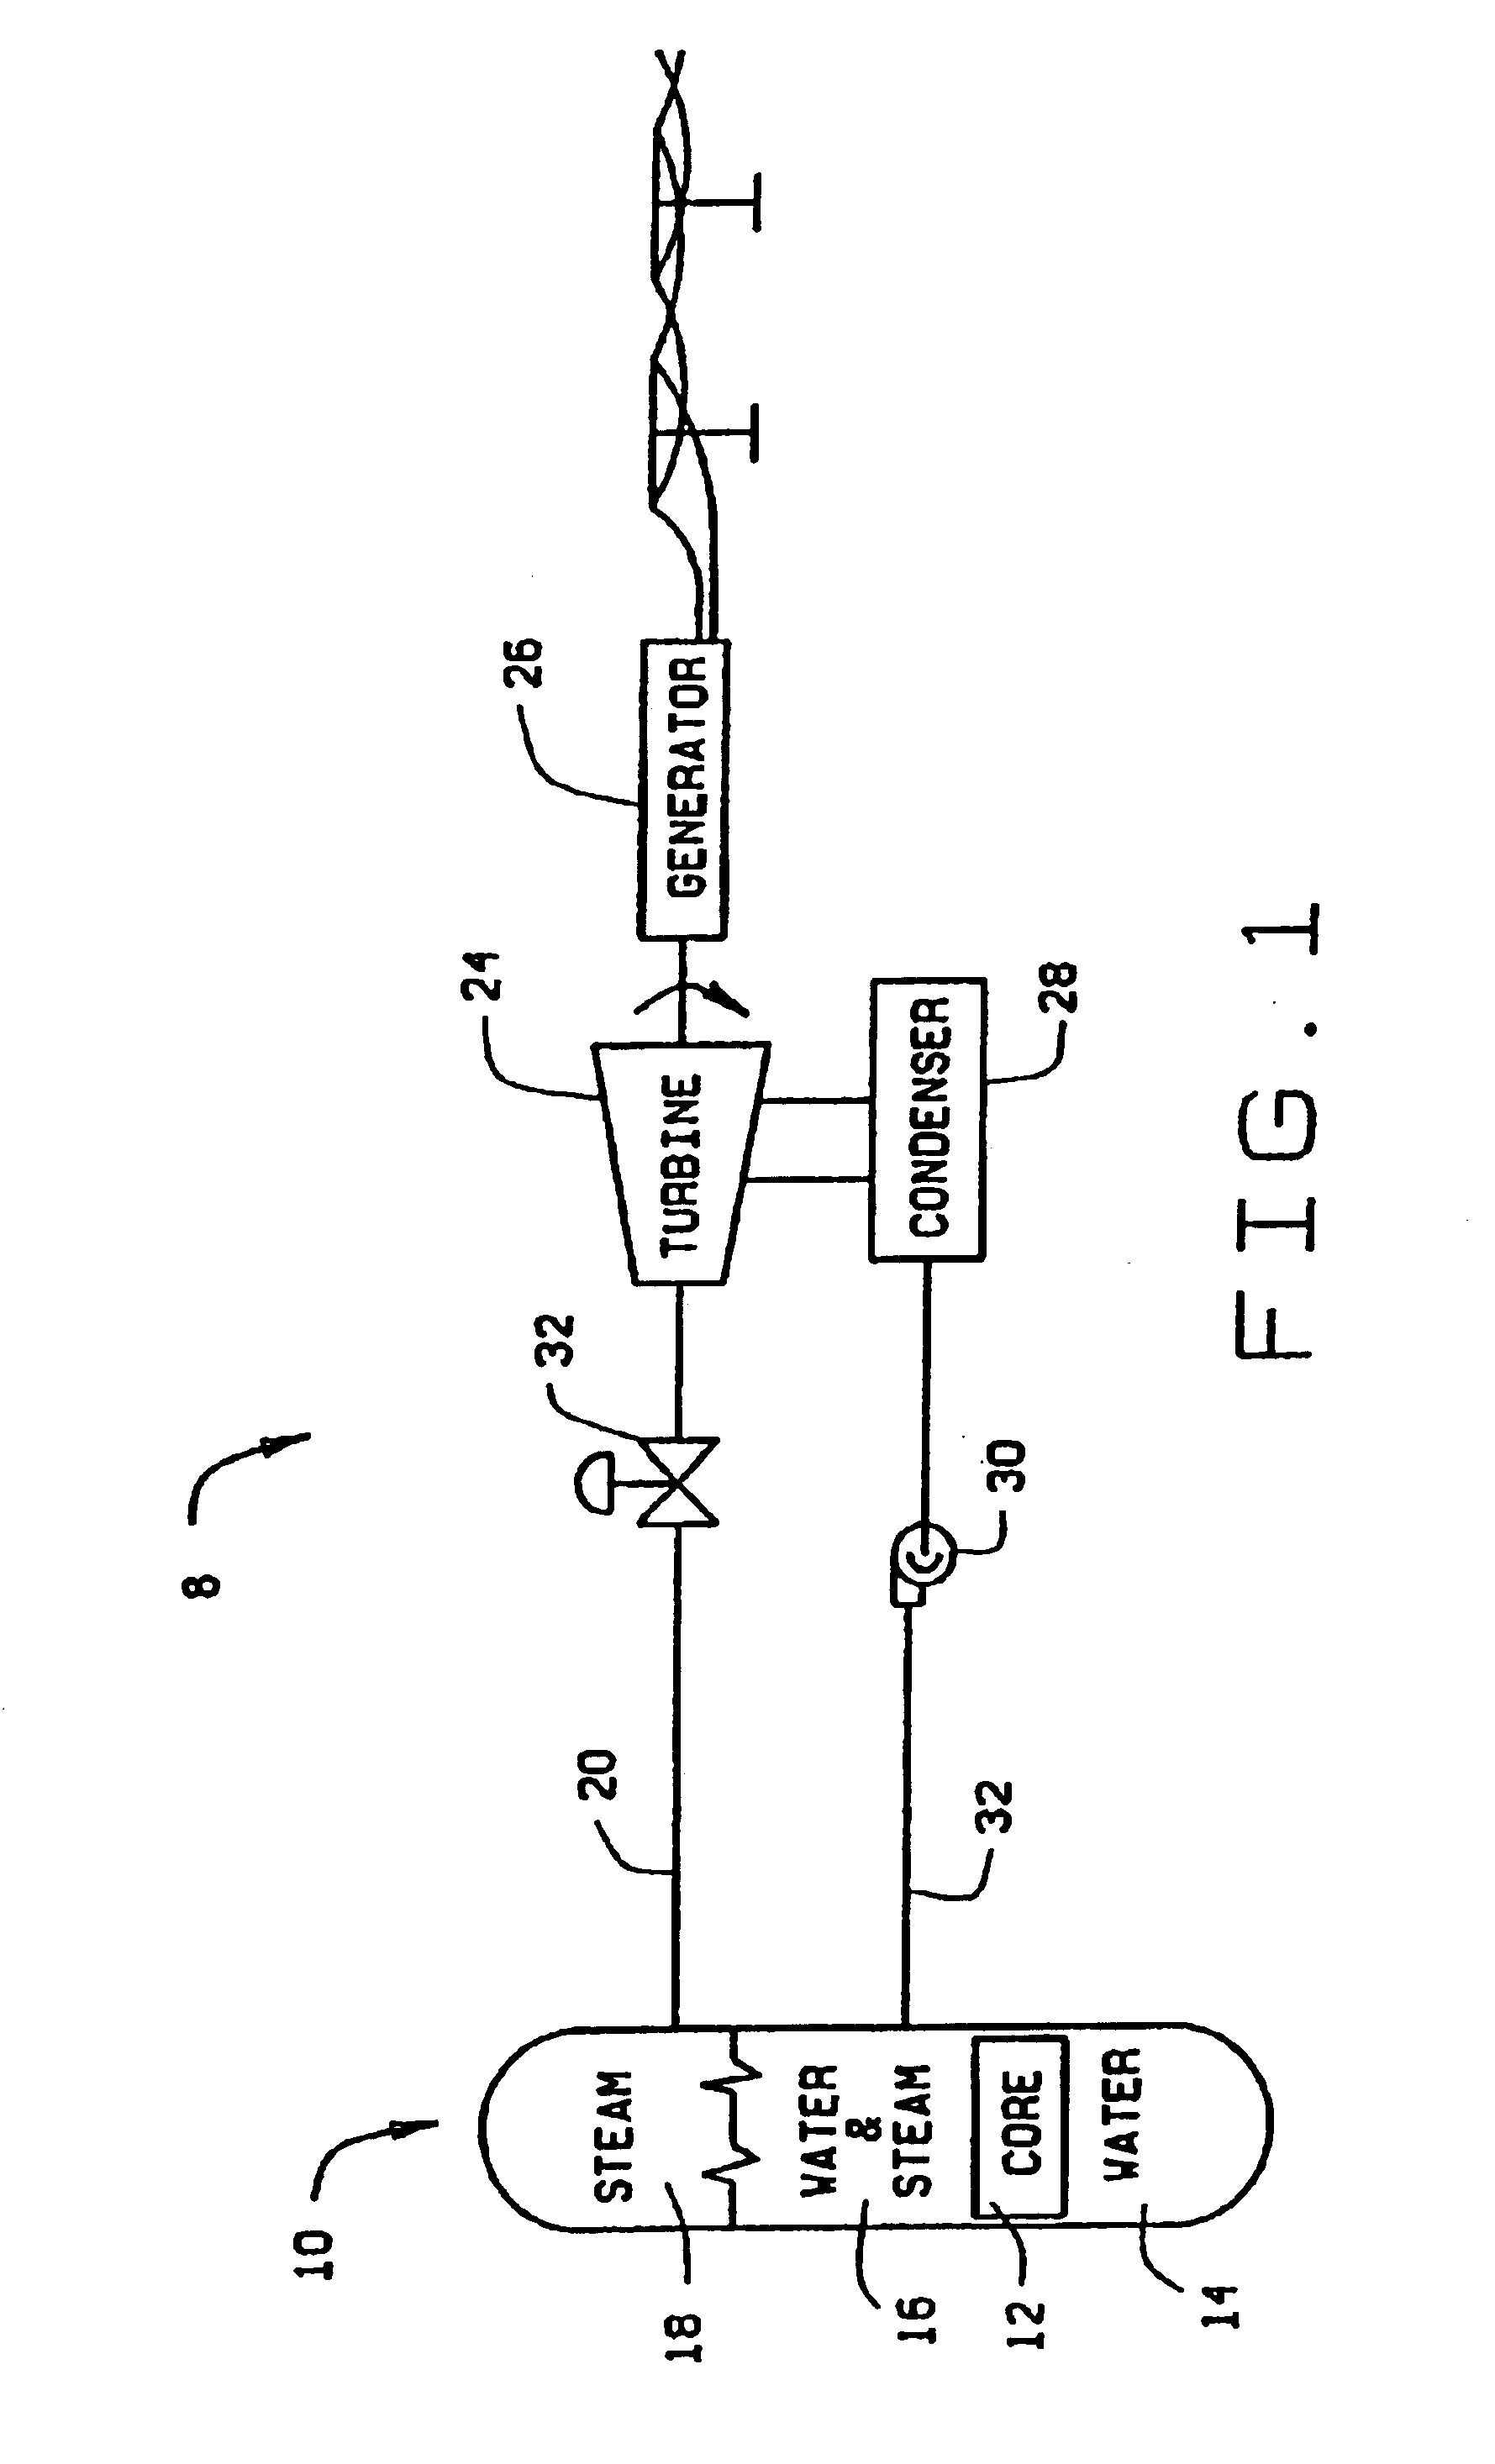 Patent Us6721383 Maximum Extended Load Line Limit Analysis For A Power Plant Diagram Boiling Water Reactor Drawing